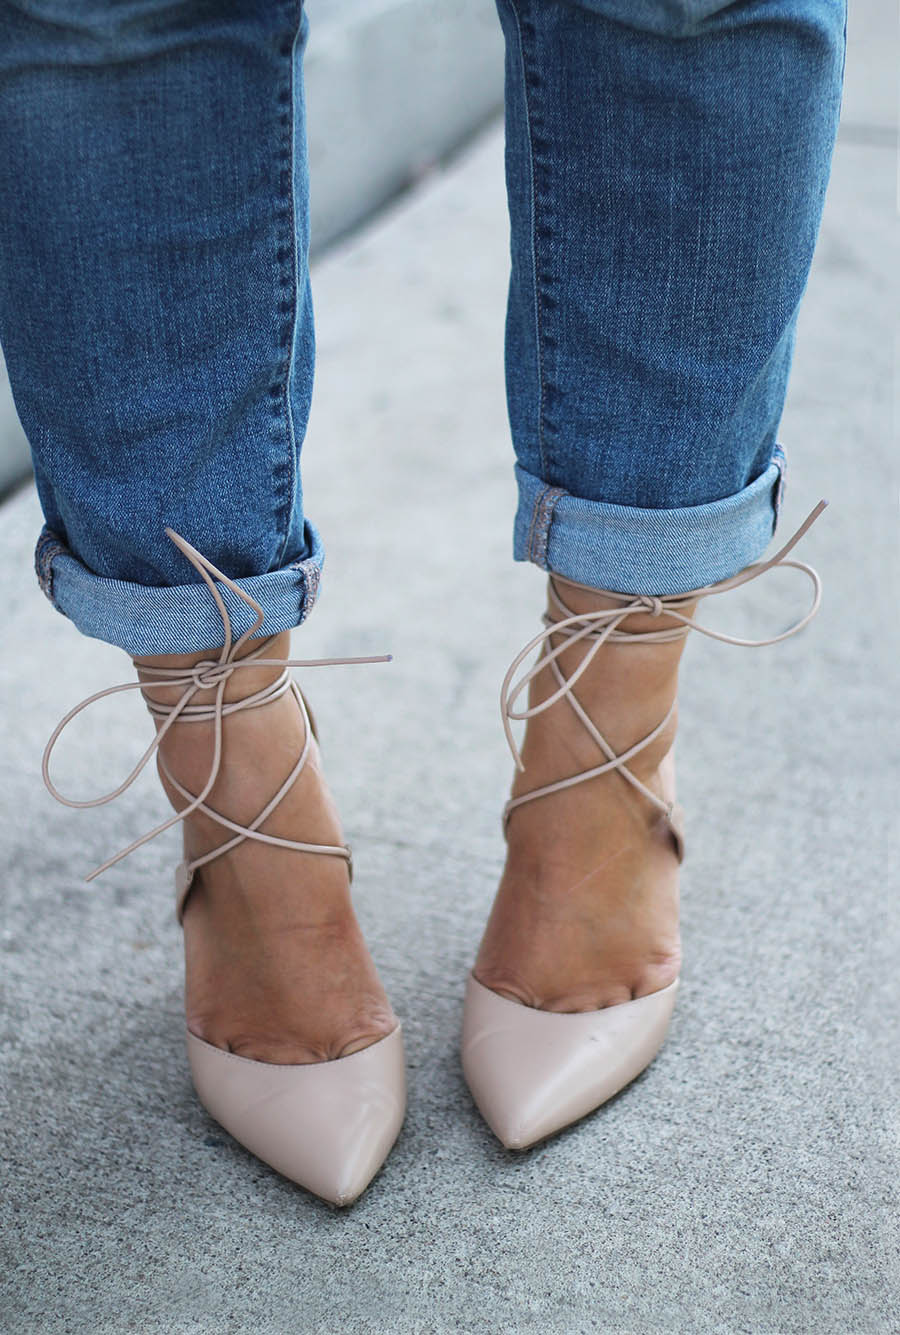 nude-lace-up-pumps-a-side-of-vogue-blog